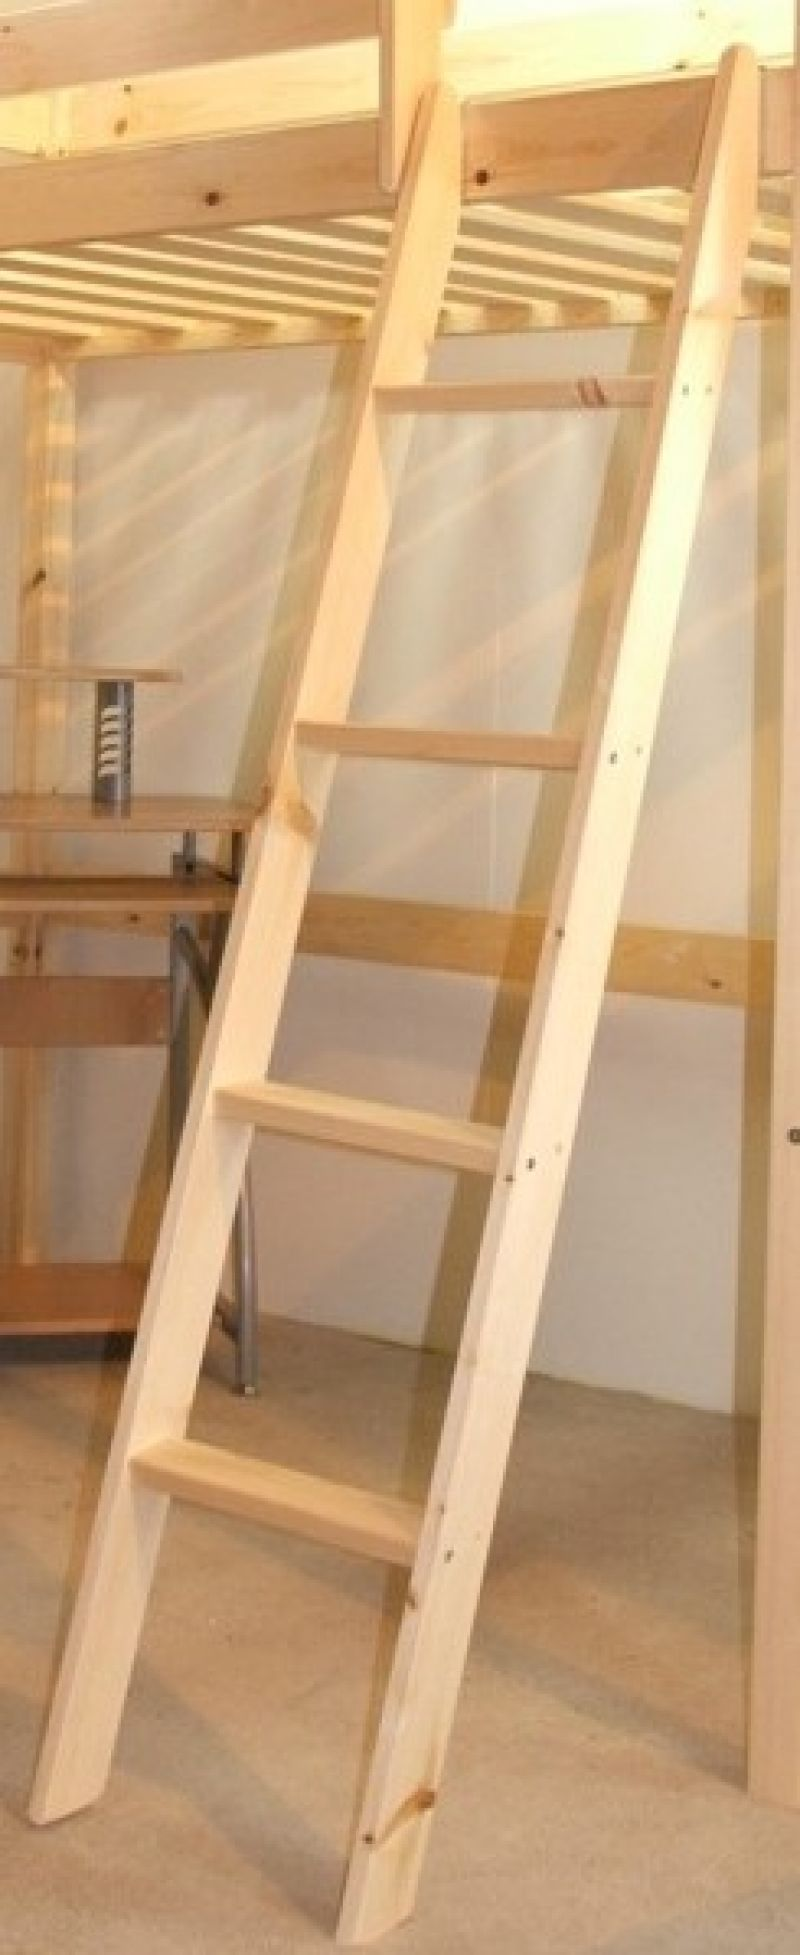 bunk bed ladder and - photo #20